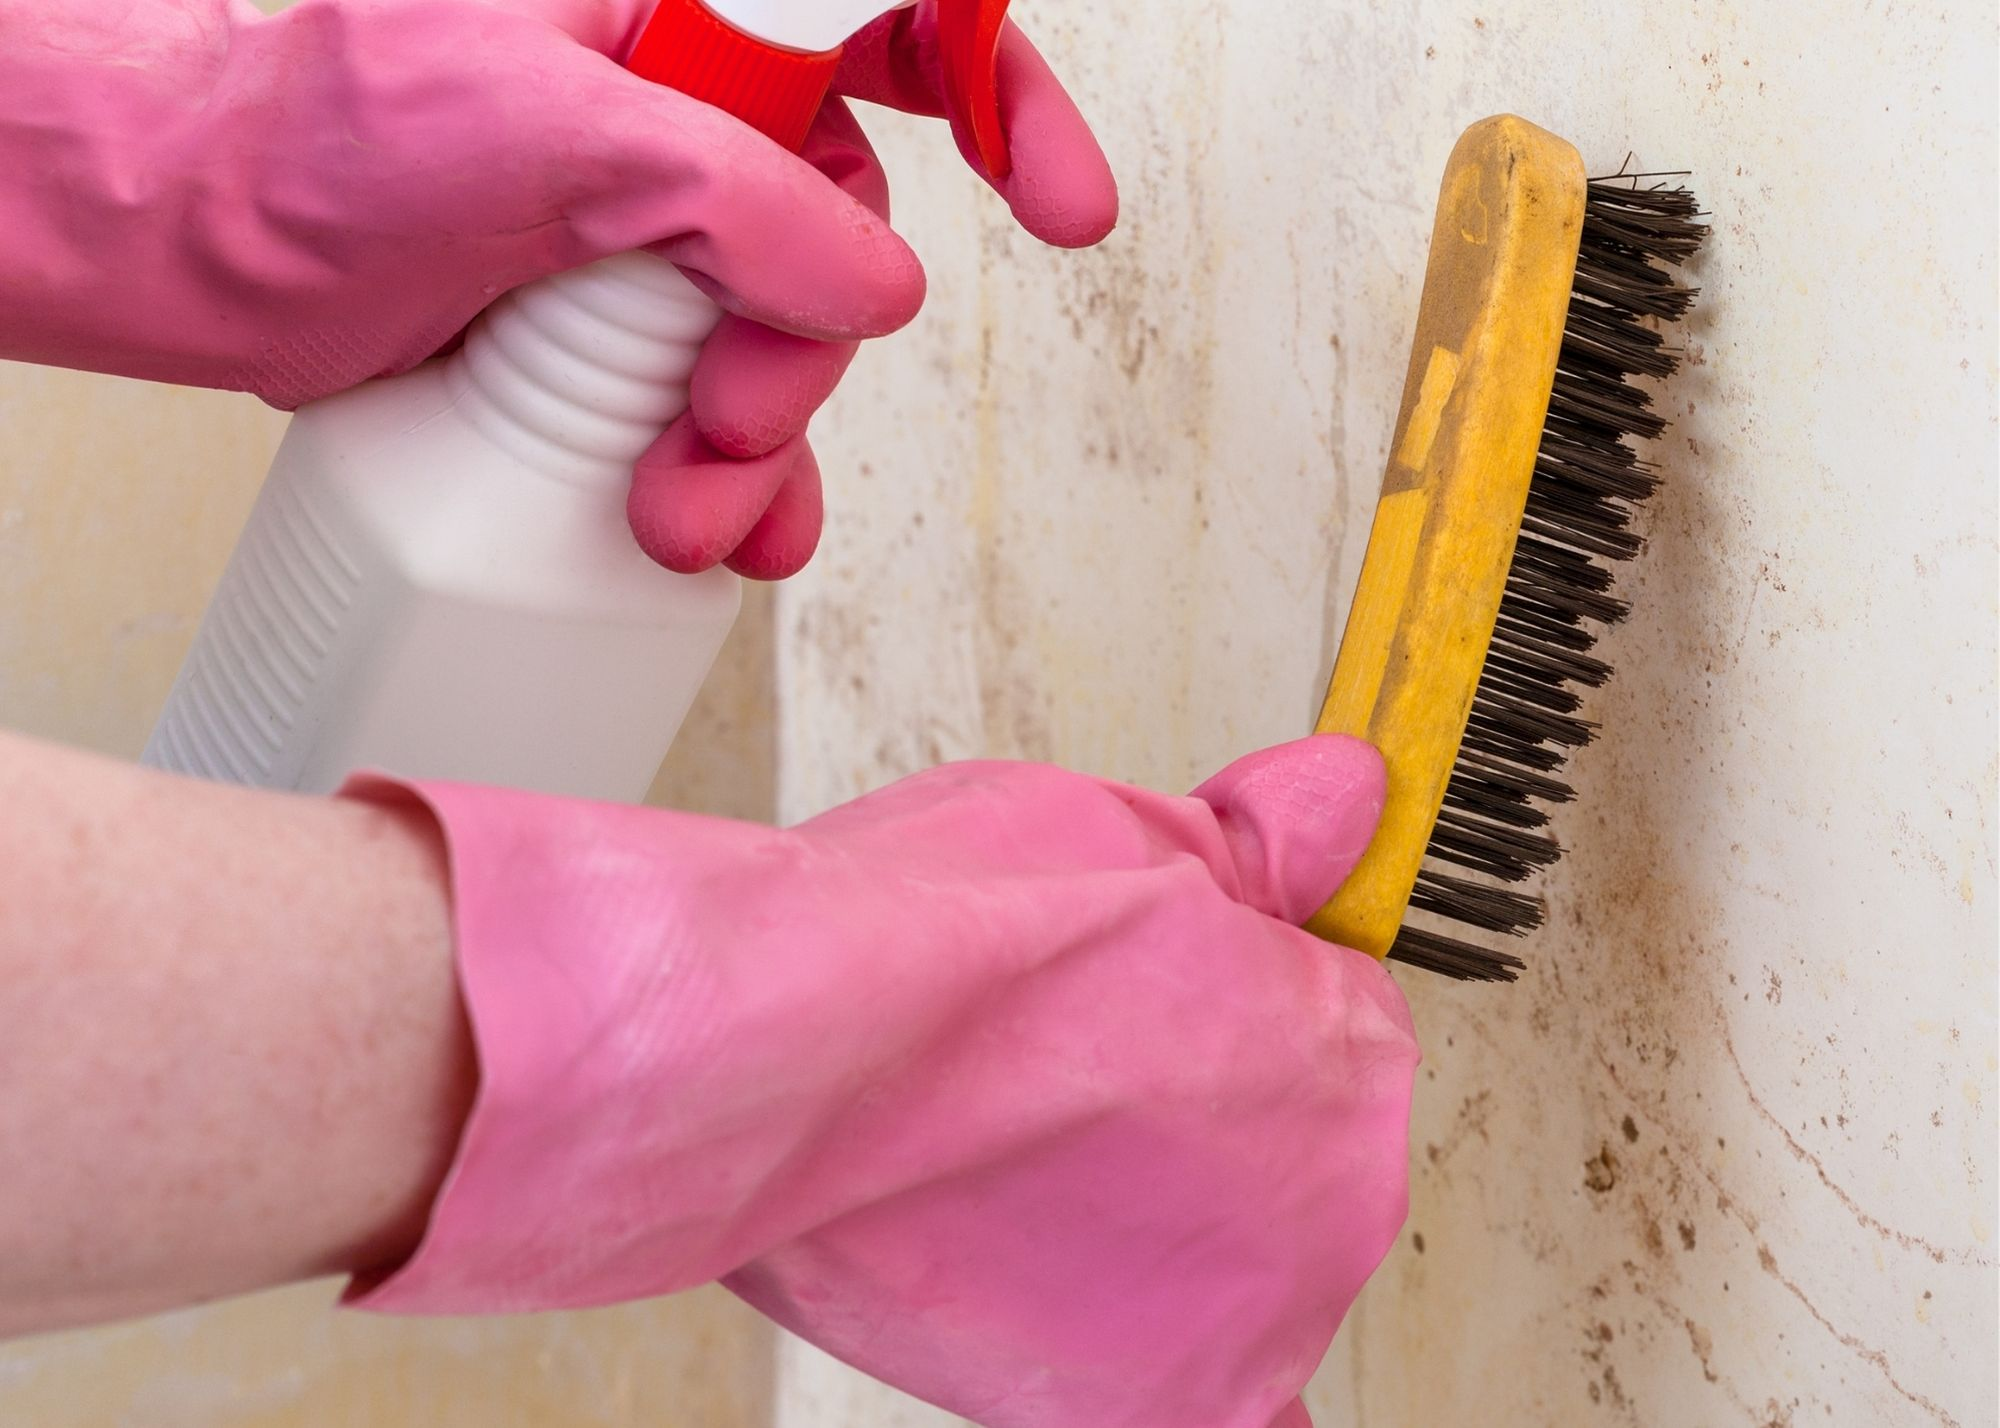 mold inspection Tampa FL